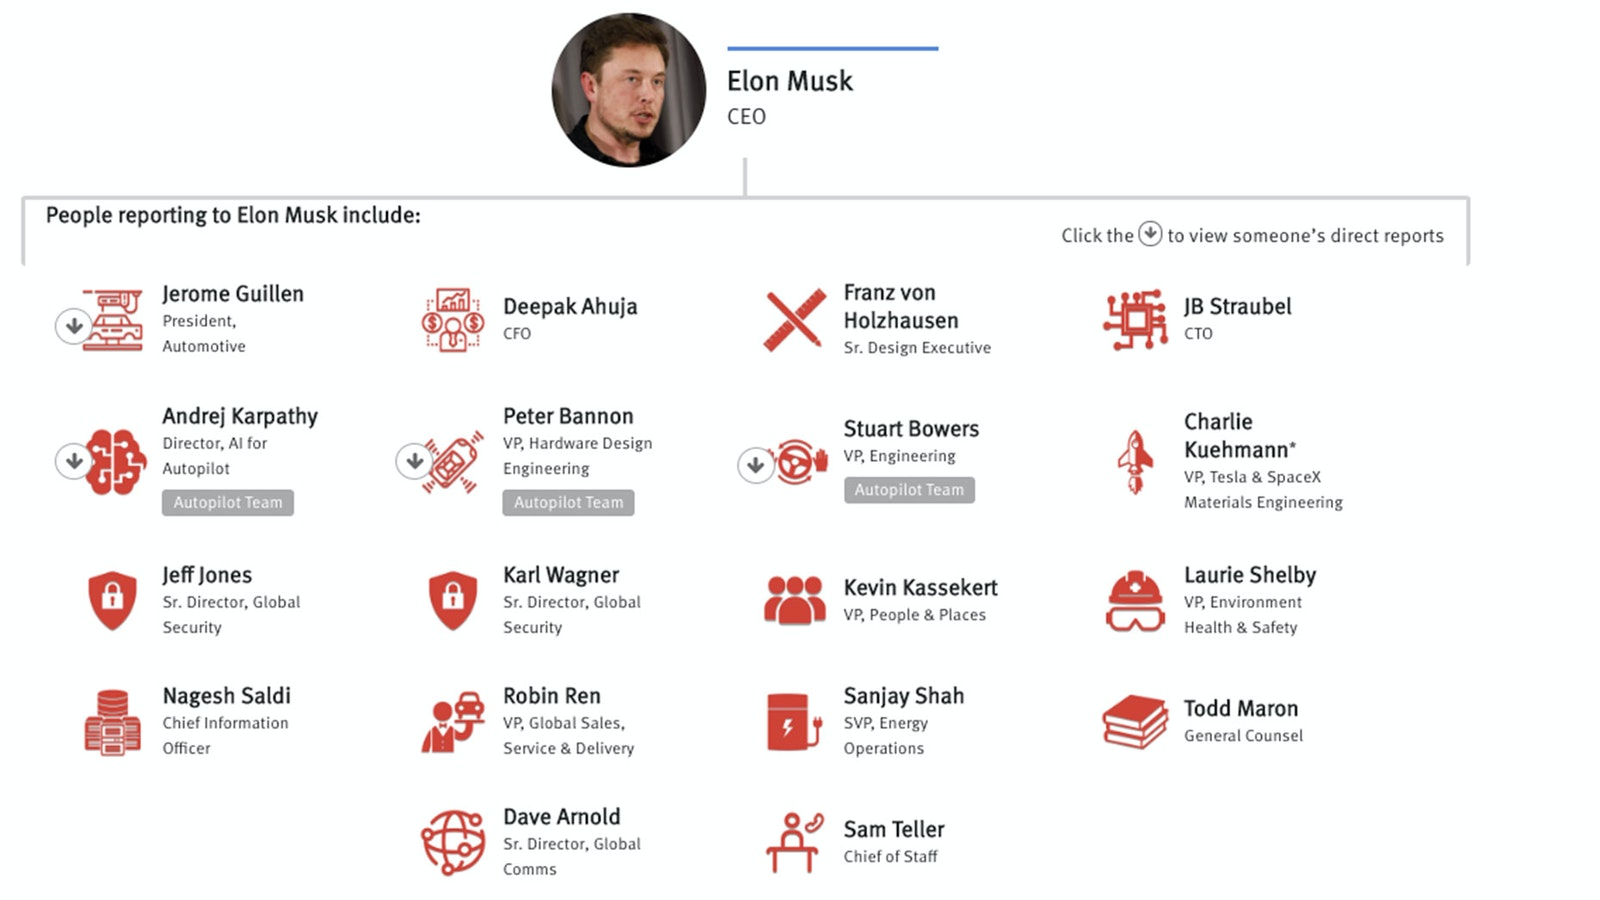 Sources: Tesla internal organizational chart; The Information reporting